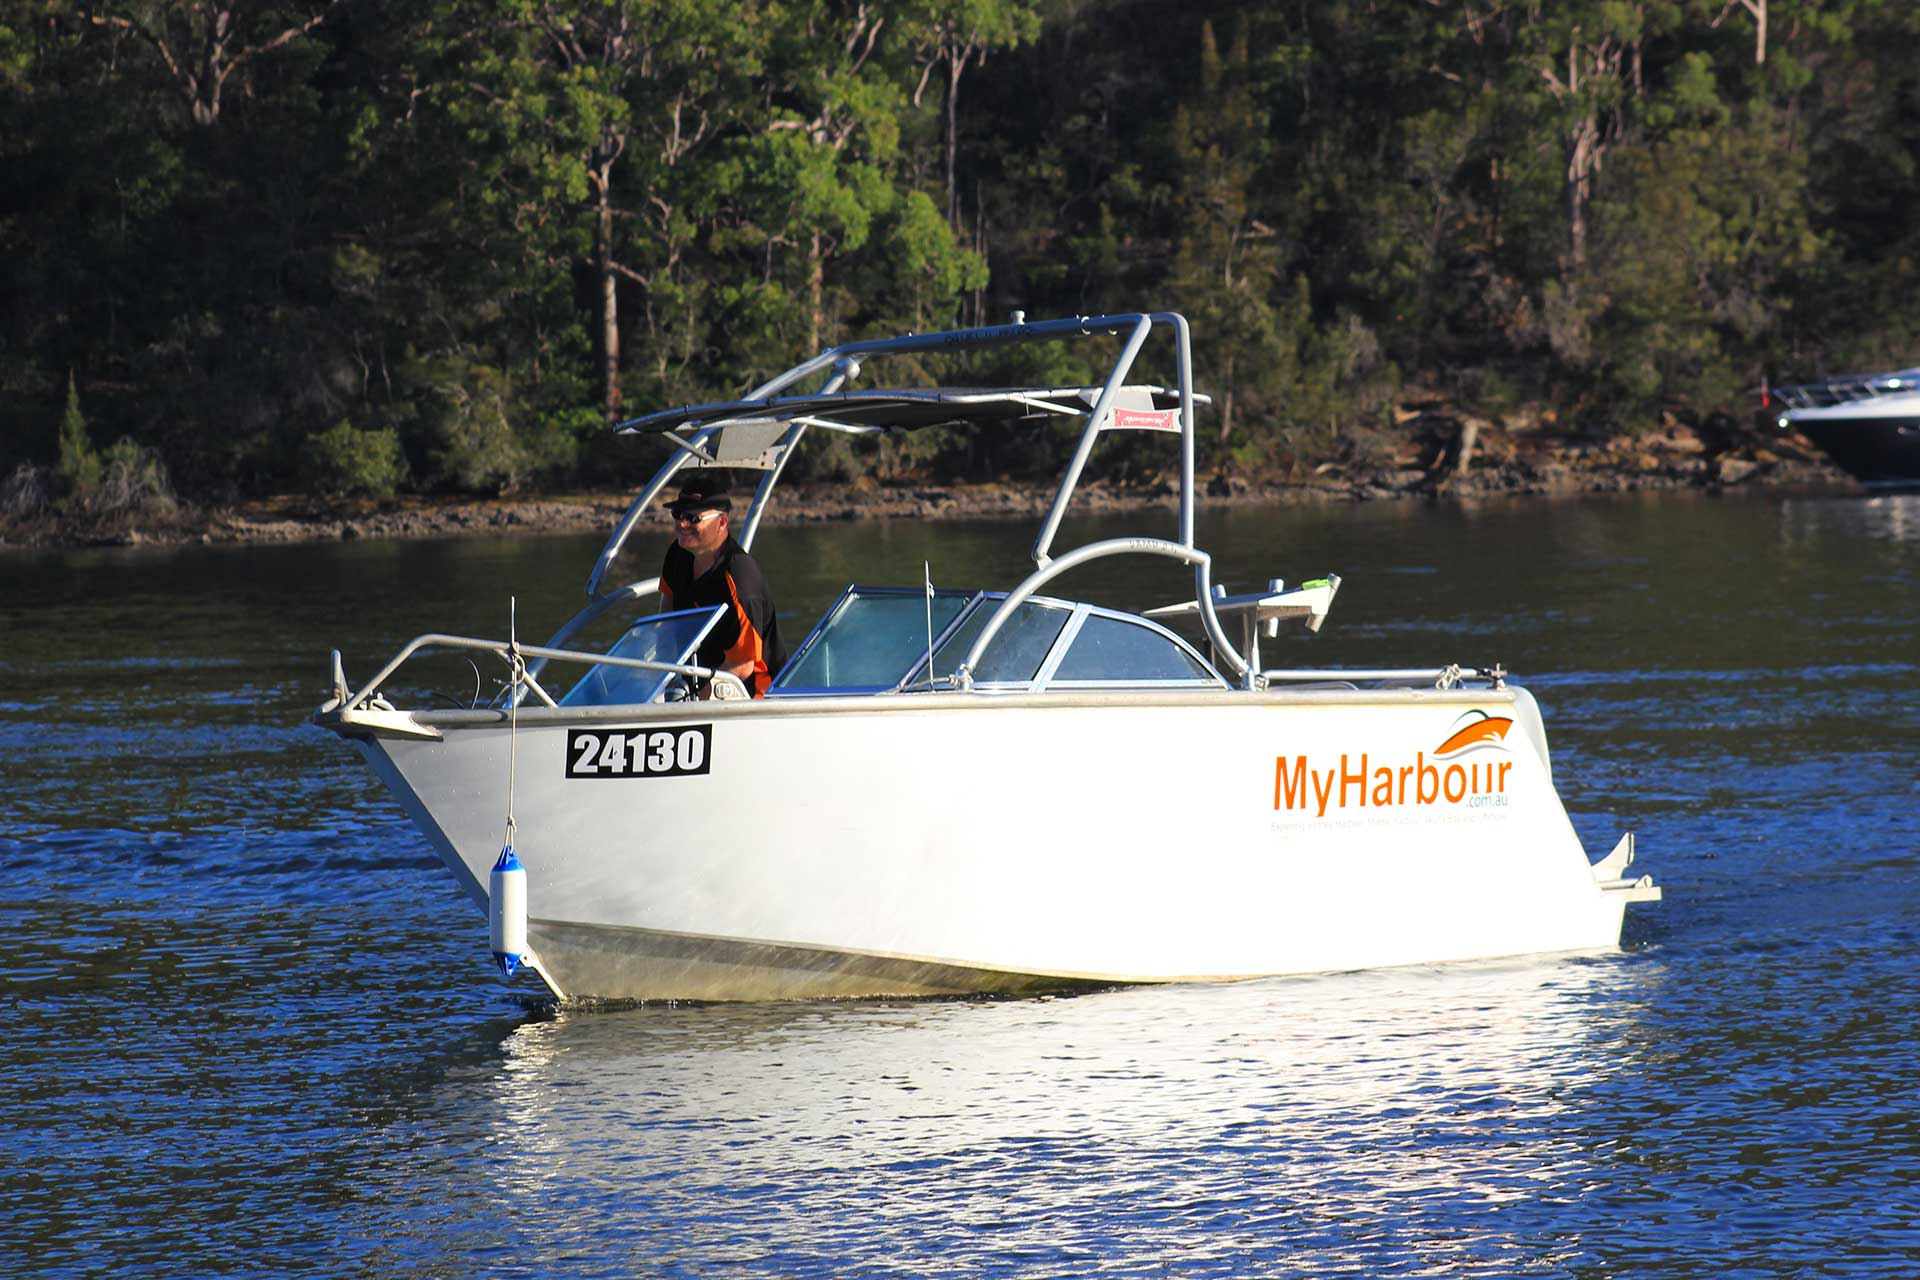 SportsRider-side-view-MyHarbour